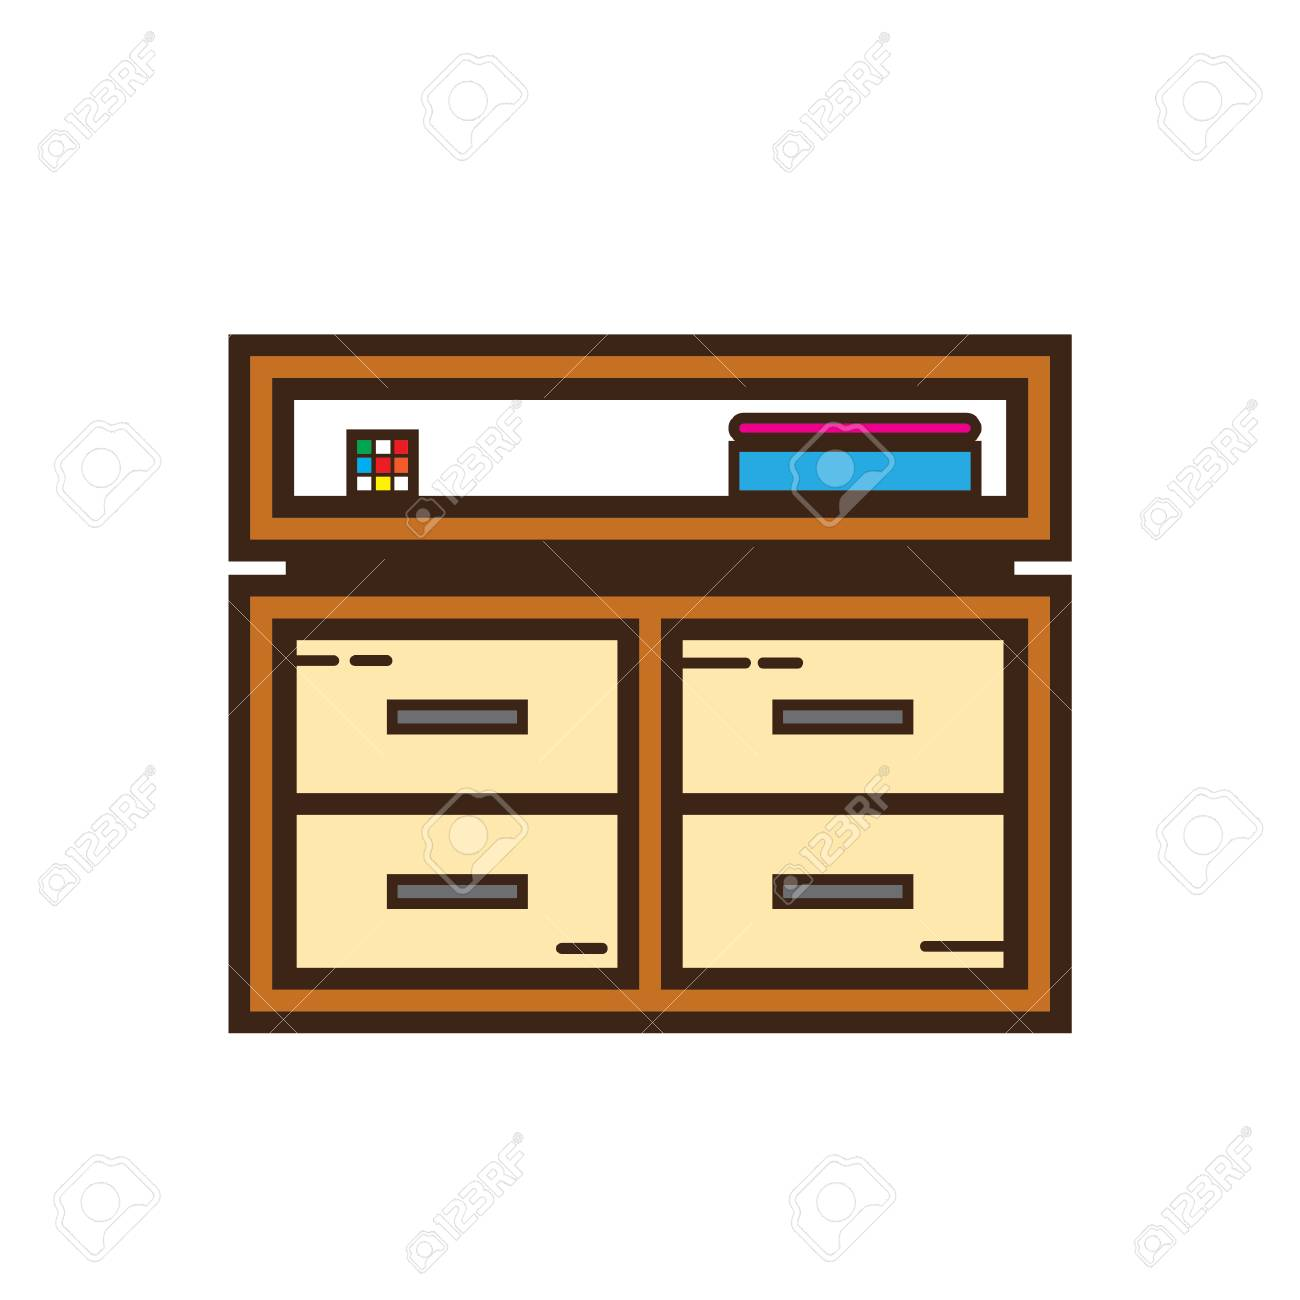 Filing Cabinet Icon Flat Simple Flat Color Cabinet Icon Vector